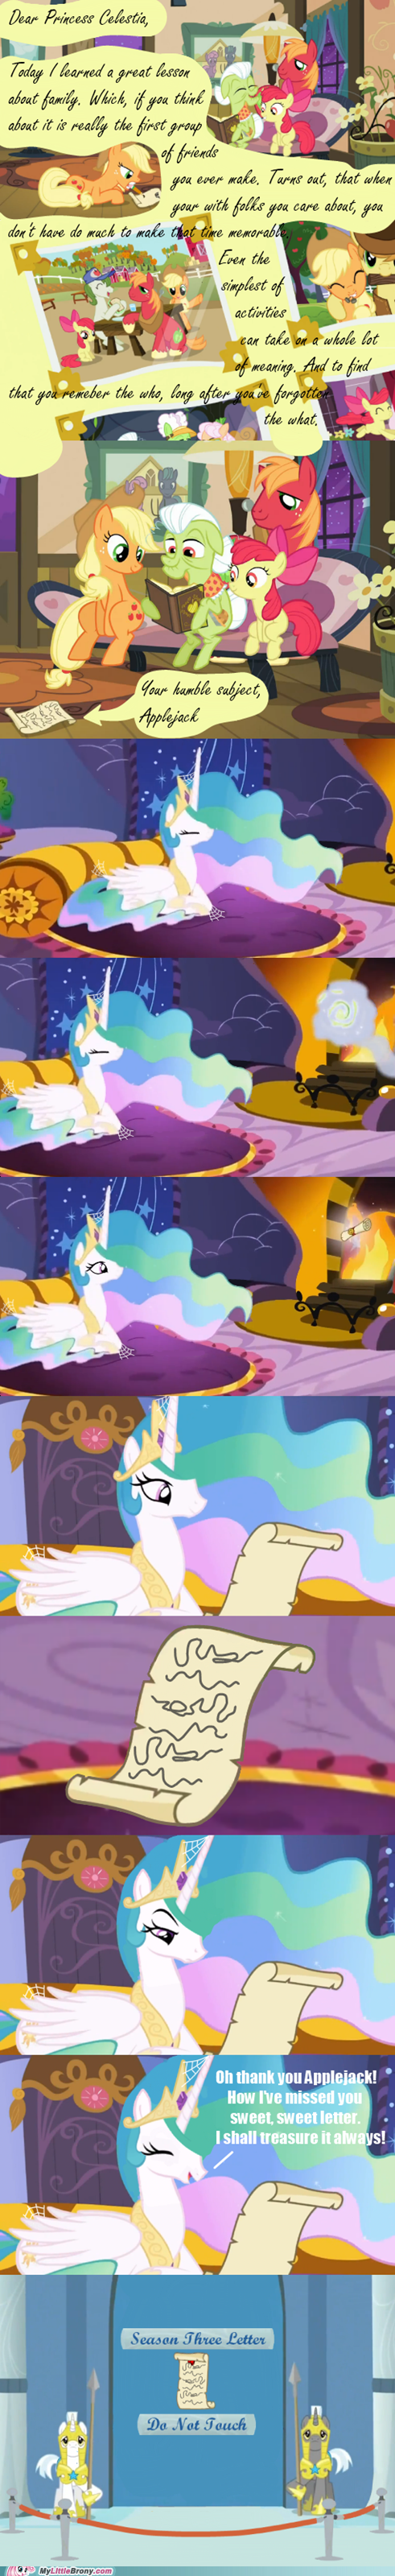 applejack,bolt of stone,comics,letter to celestia,princess celestia